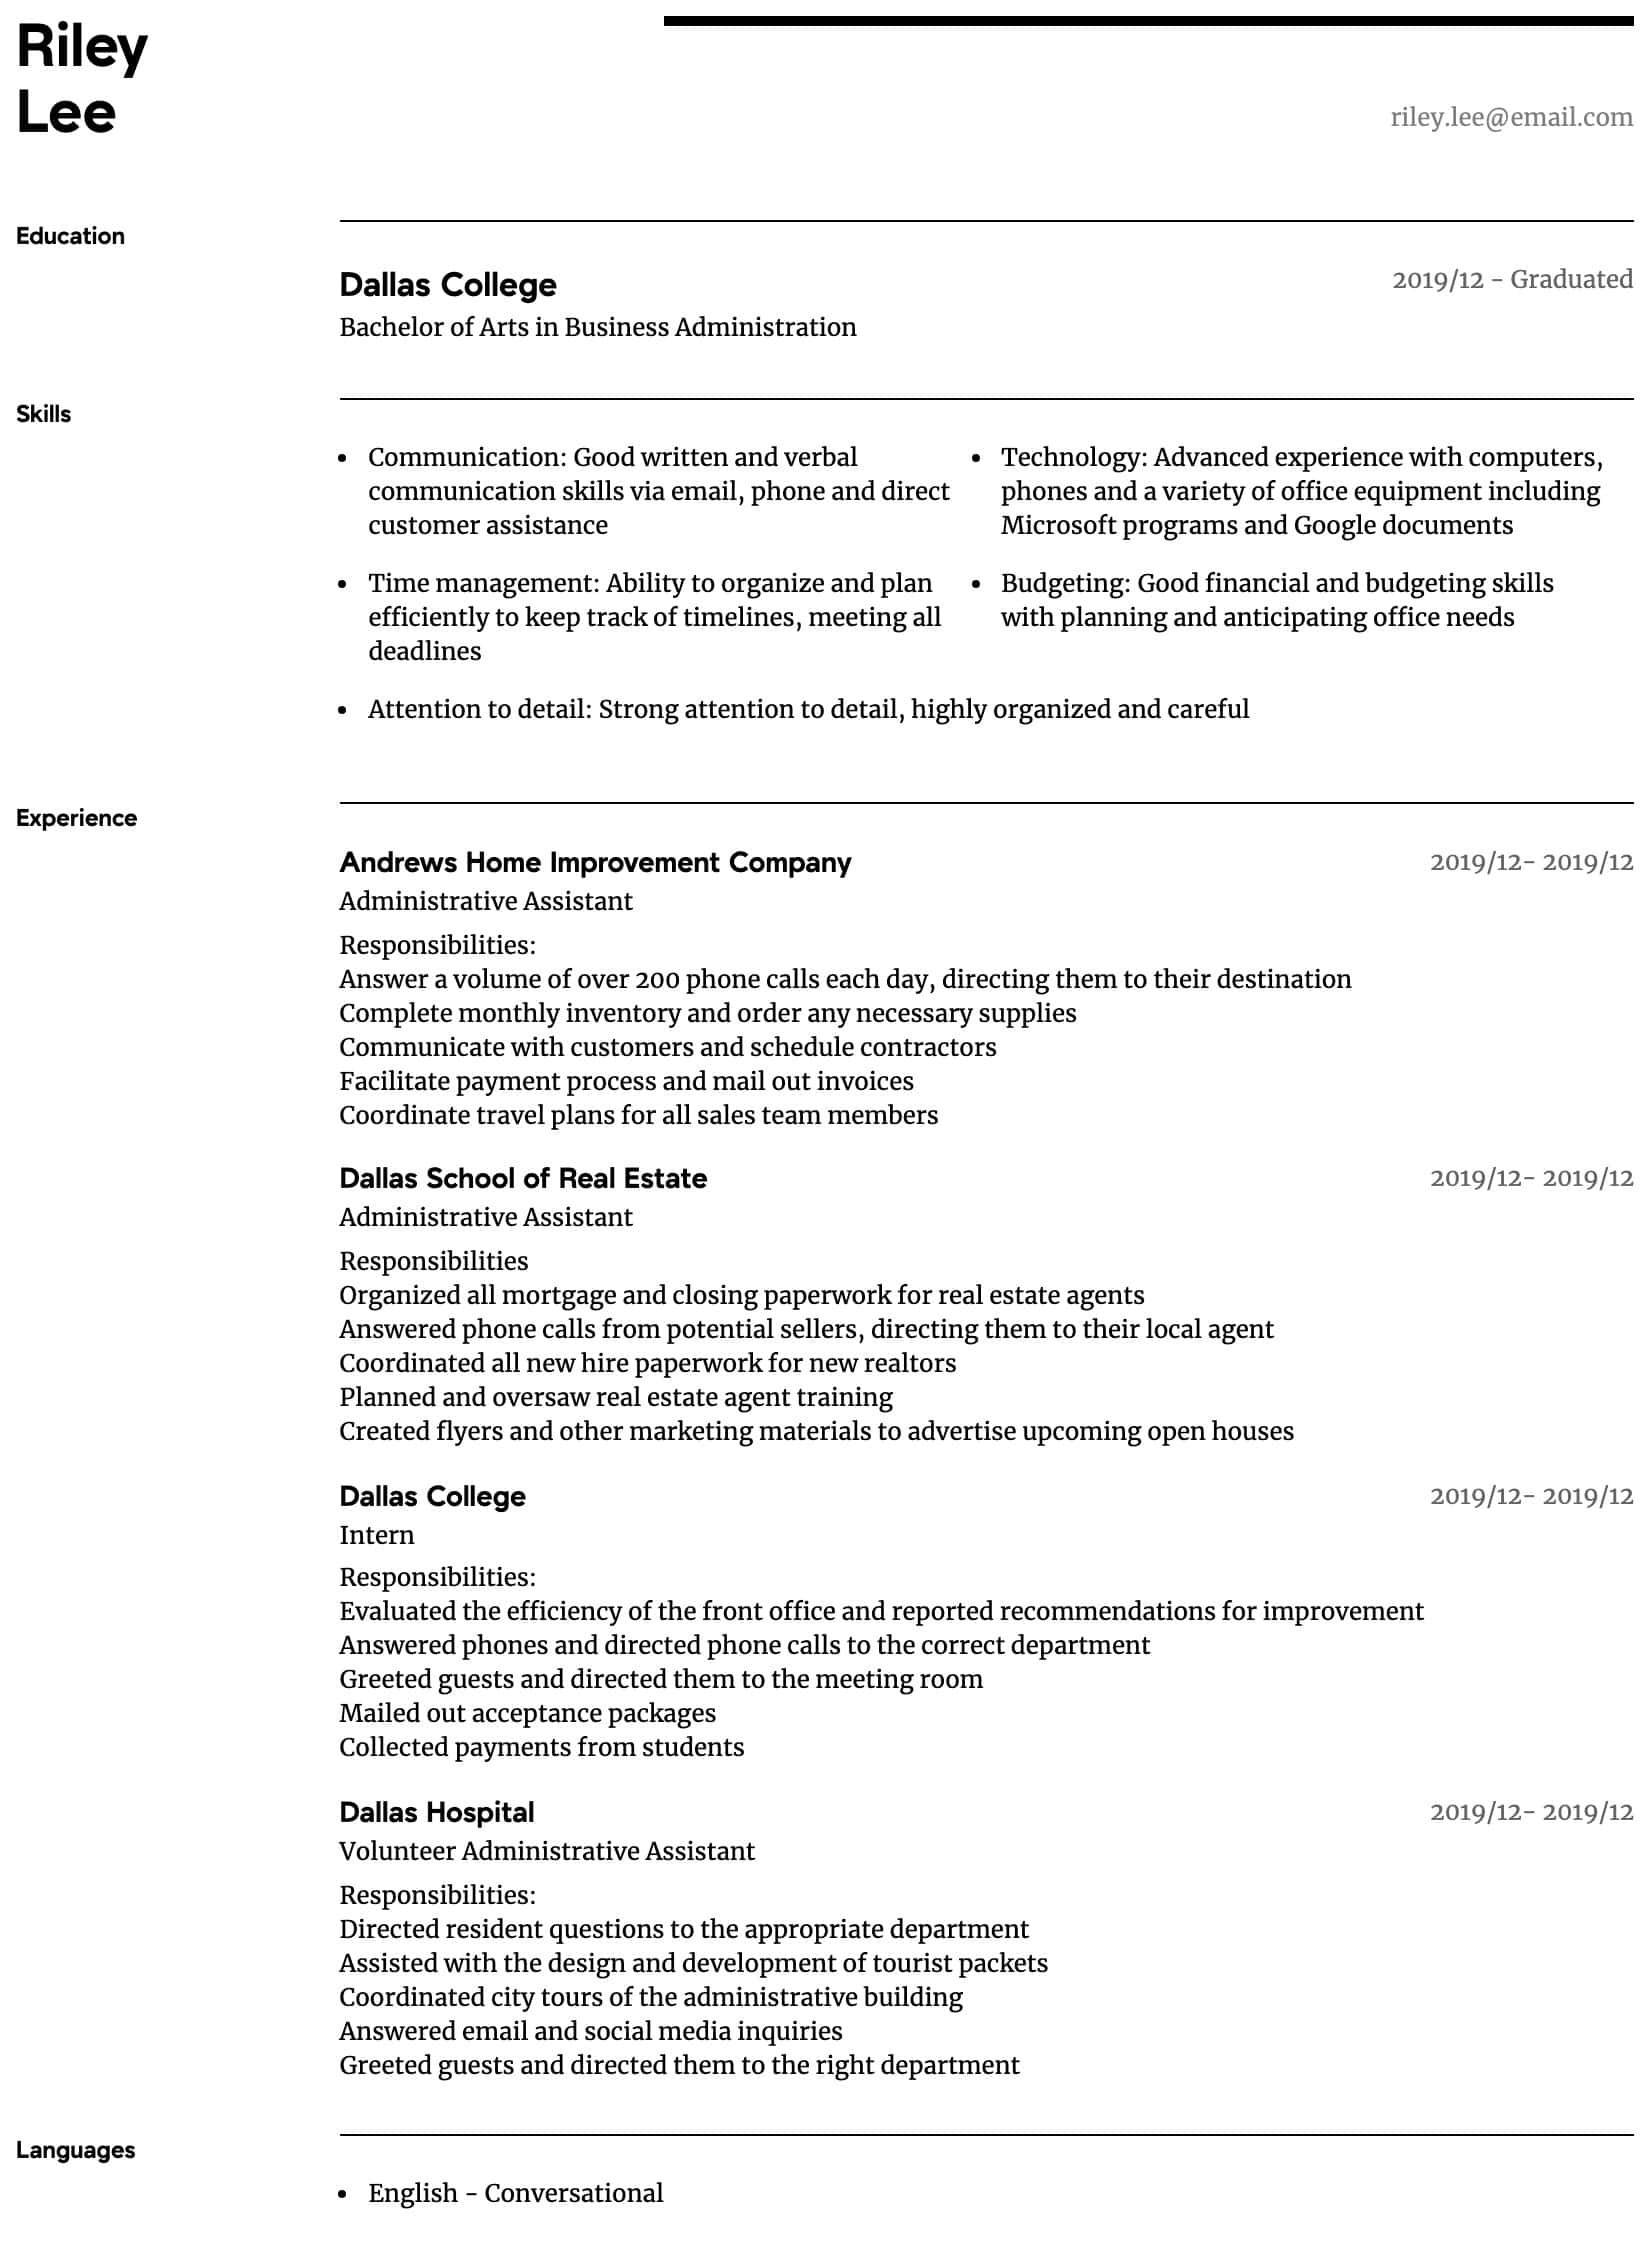 administrative assistant resume samples all experience levels skills intermediate federal Resume Administrative Assistant Resume Skills